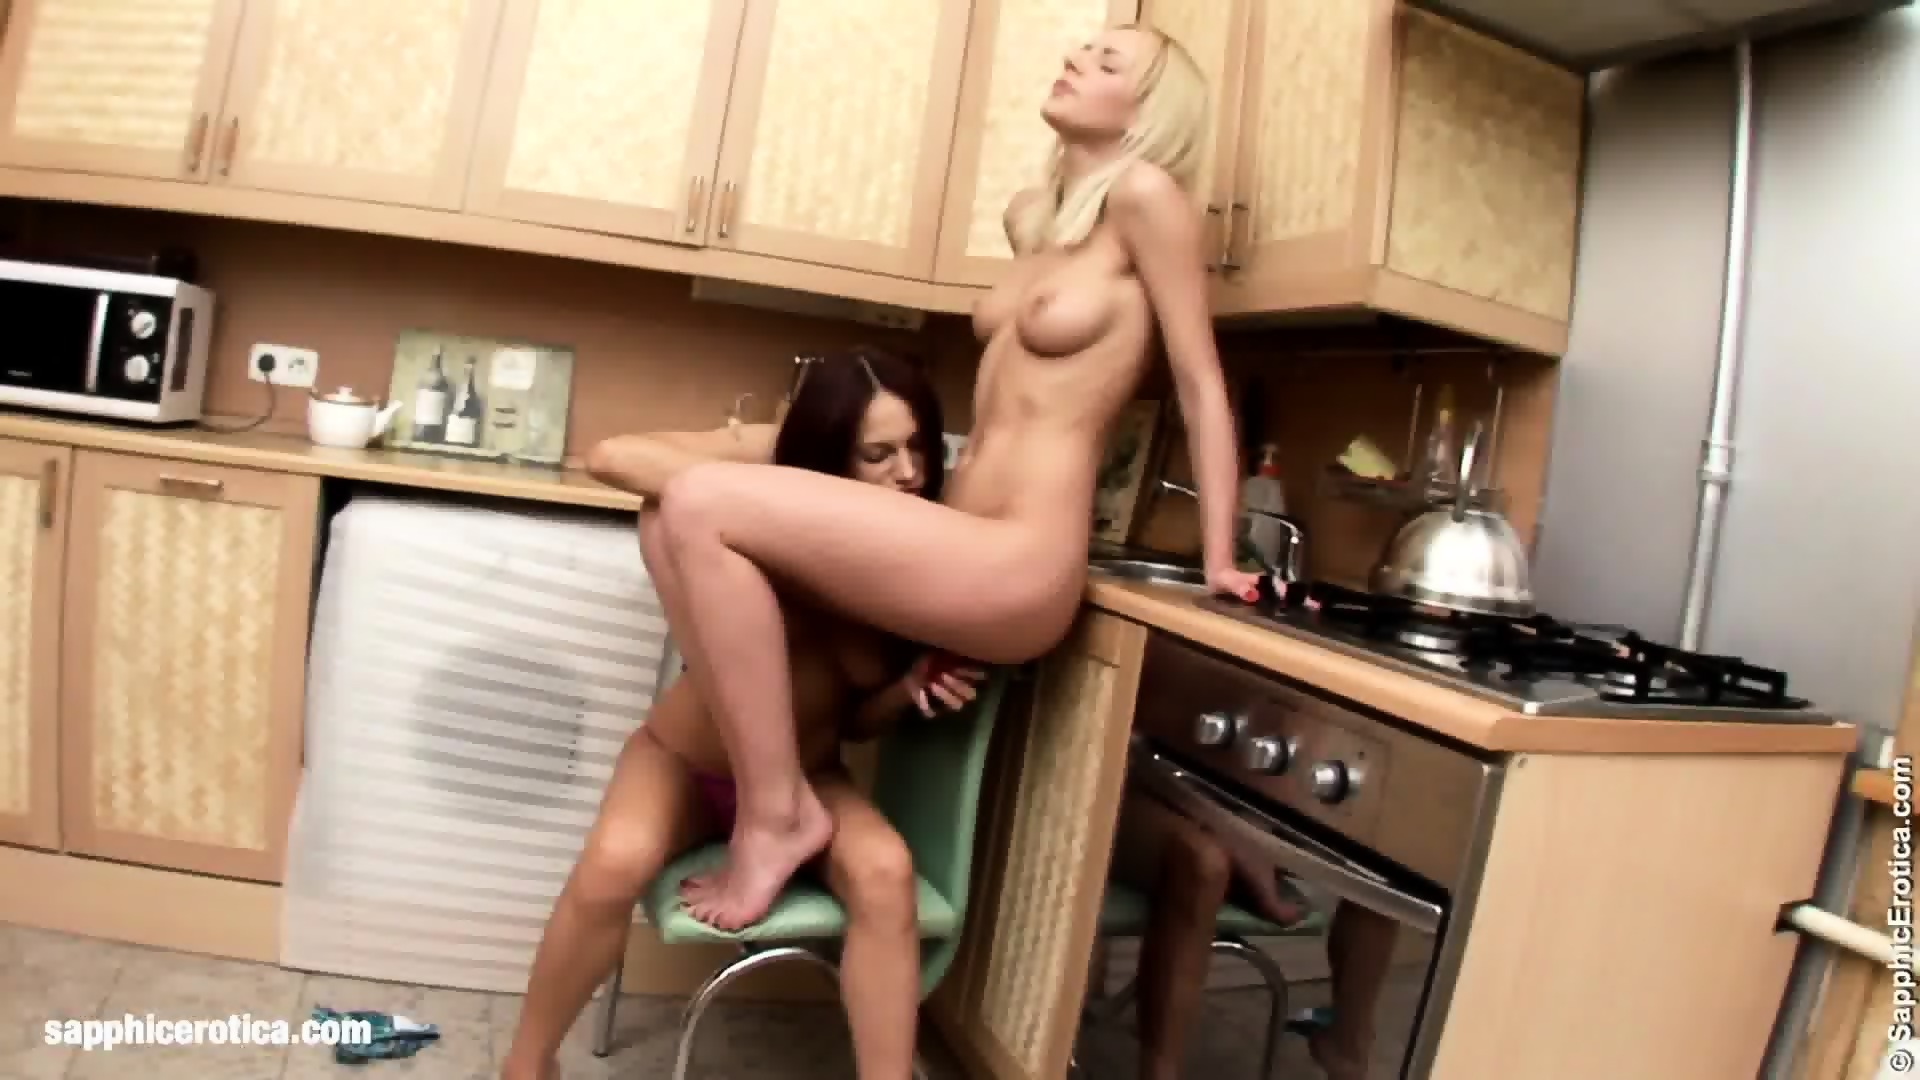 Intense Twosome With Questa And Wendie On Sapphic Erotica Hot Lesbian Sex  In The Kitchen -